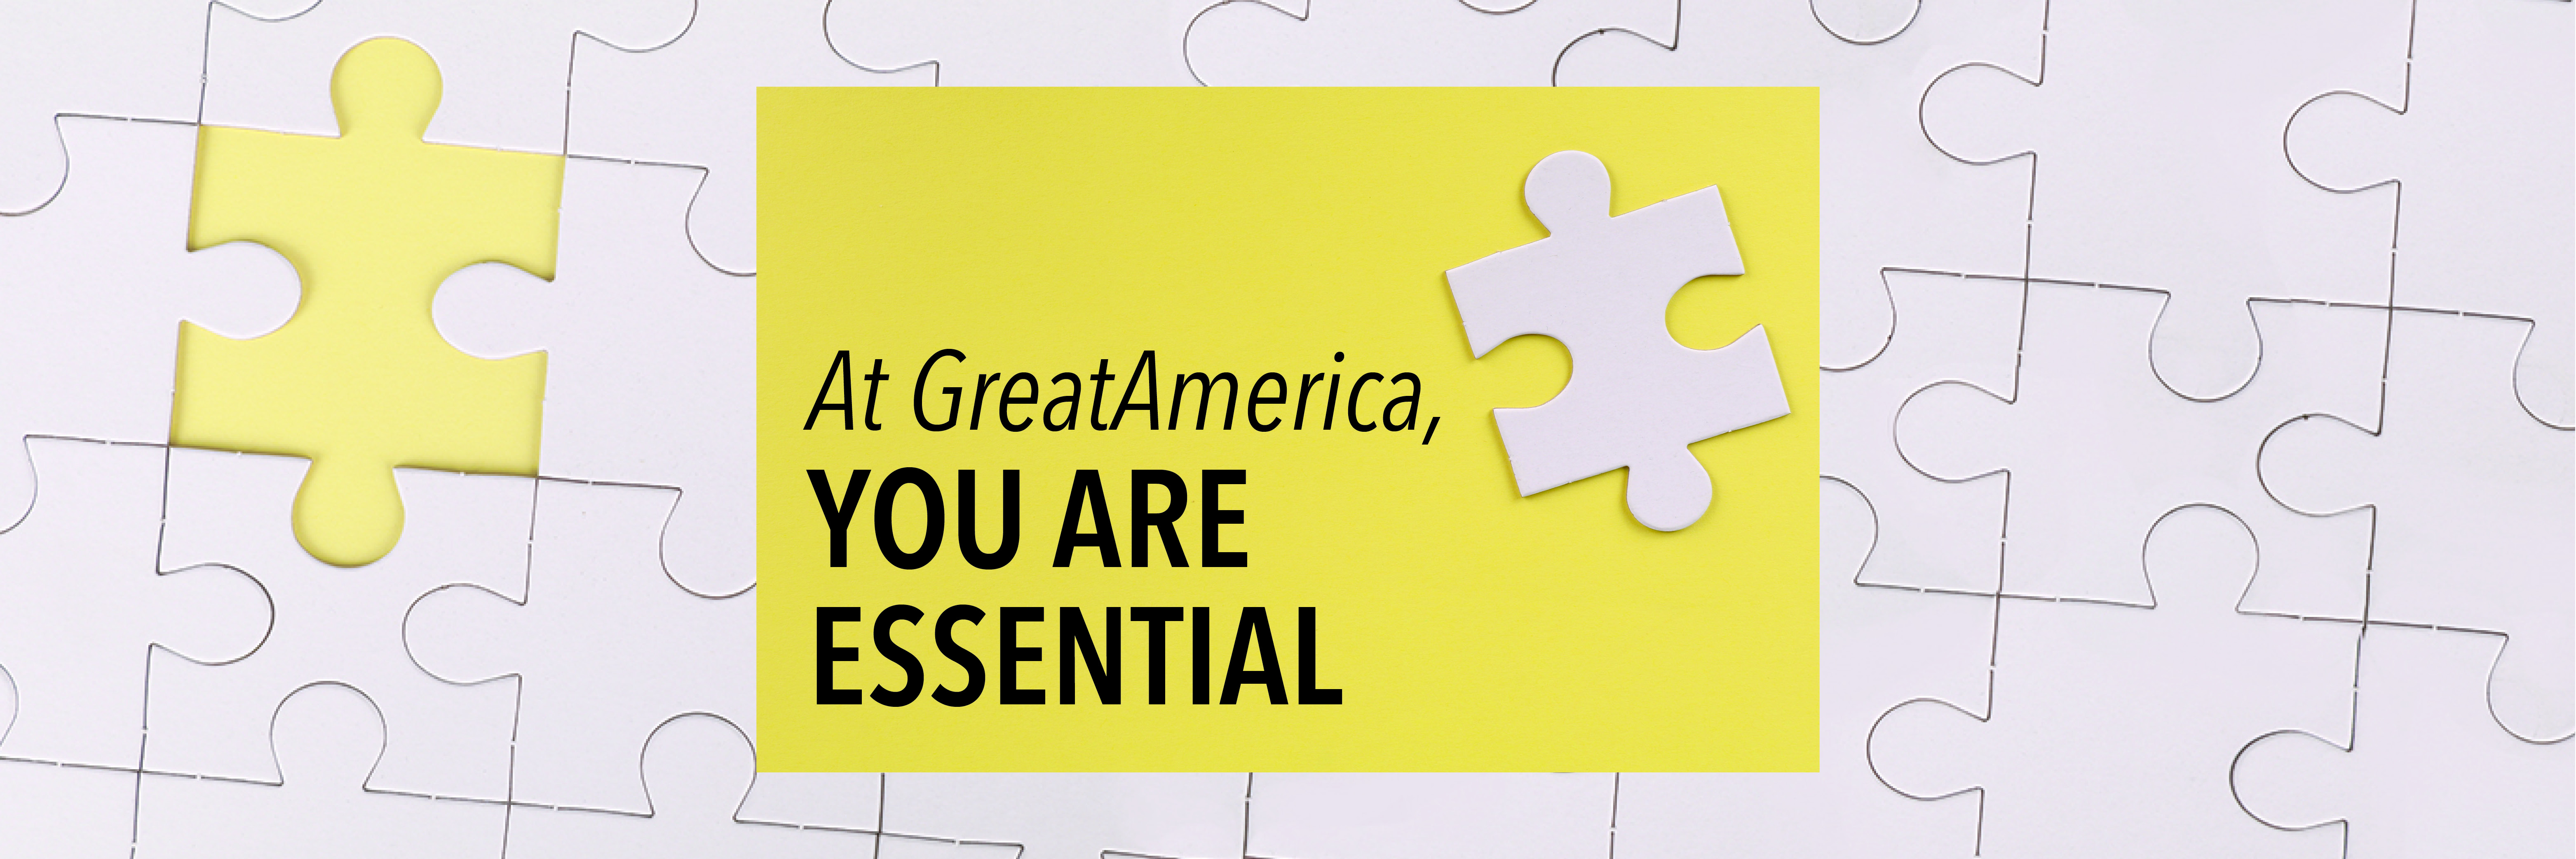 At GreatAmerica, You Are Essential